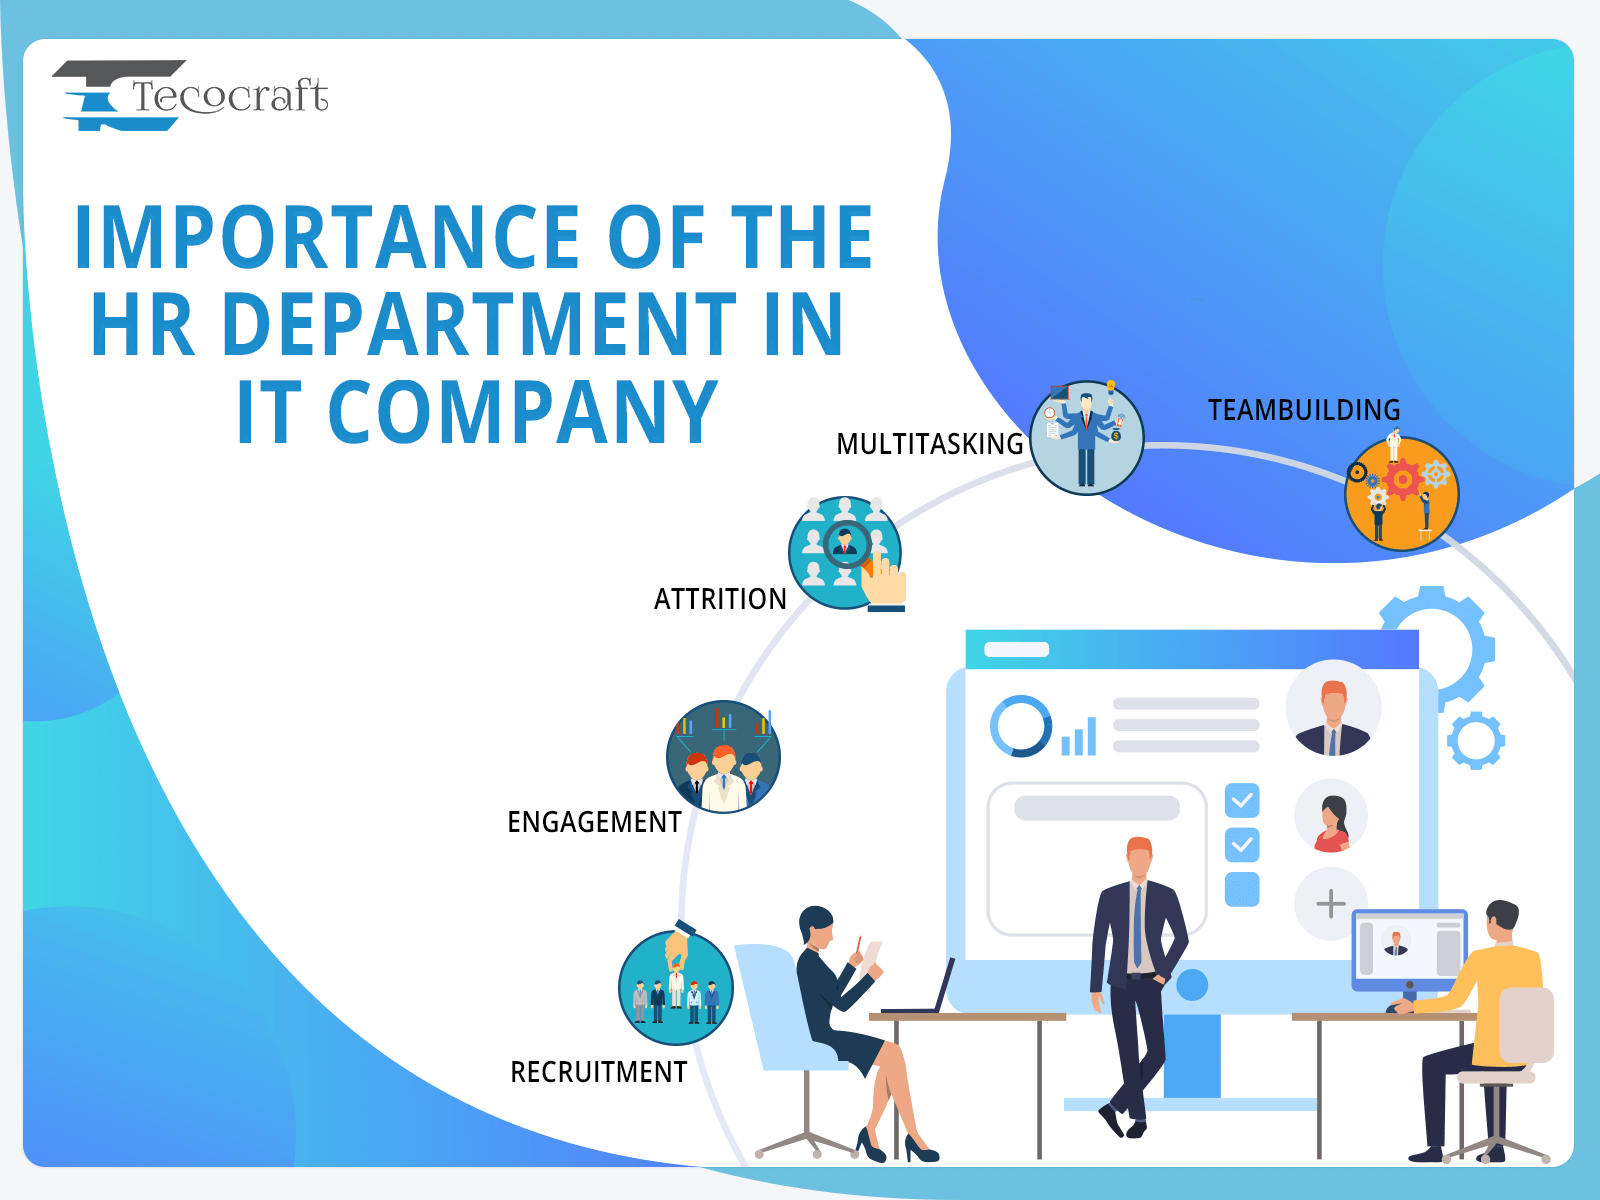 role of HR in IT companies, Importance of the HR Department in IT Company